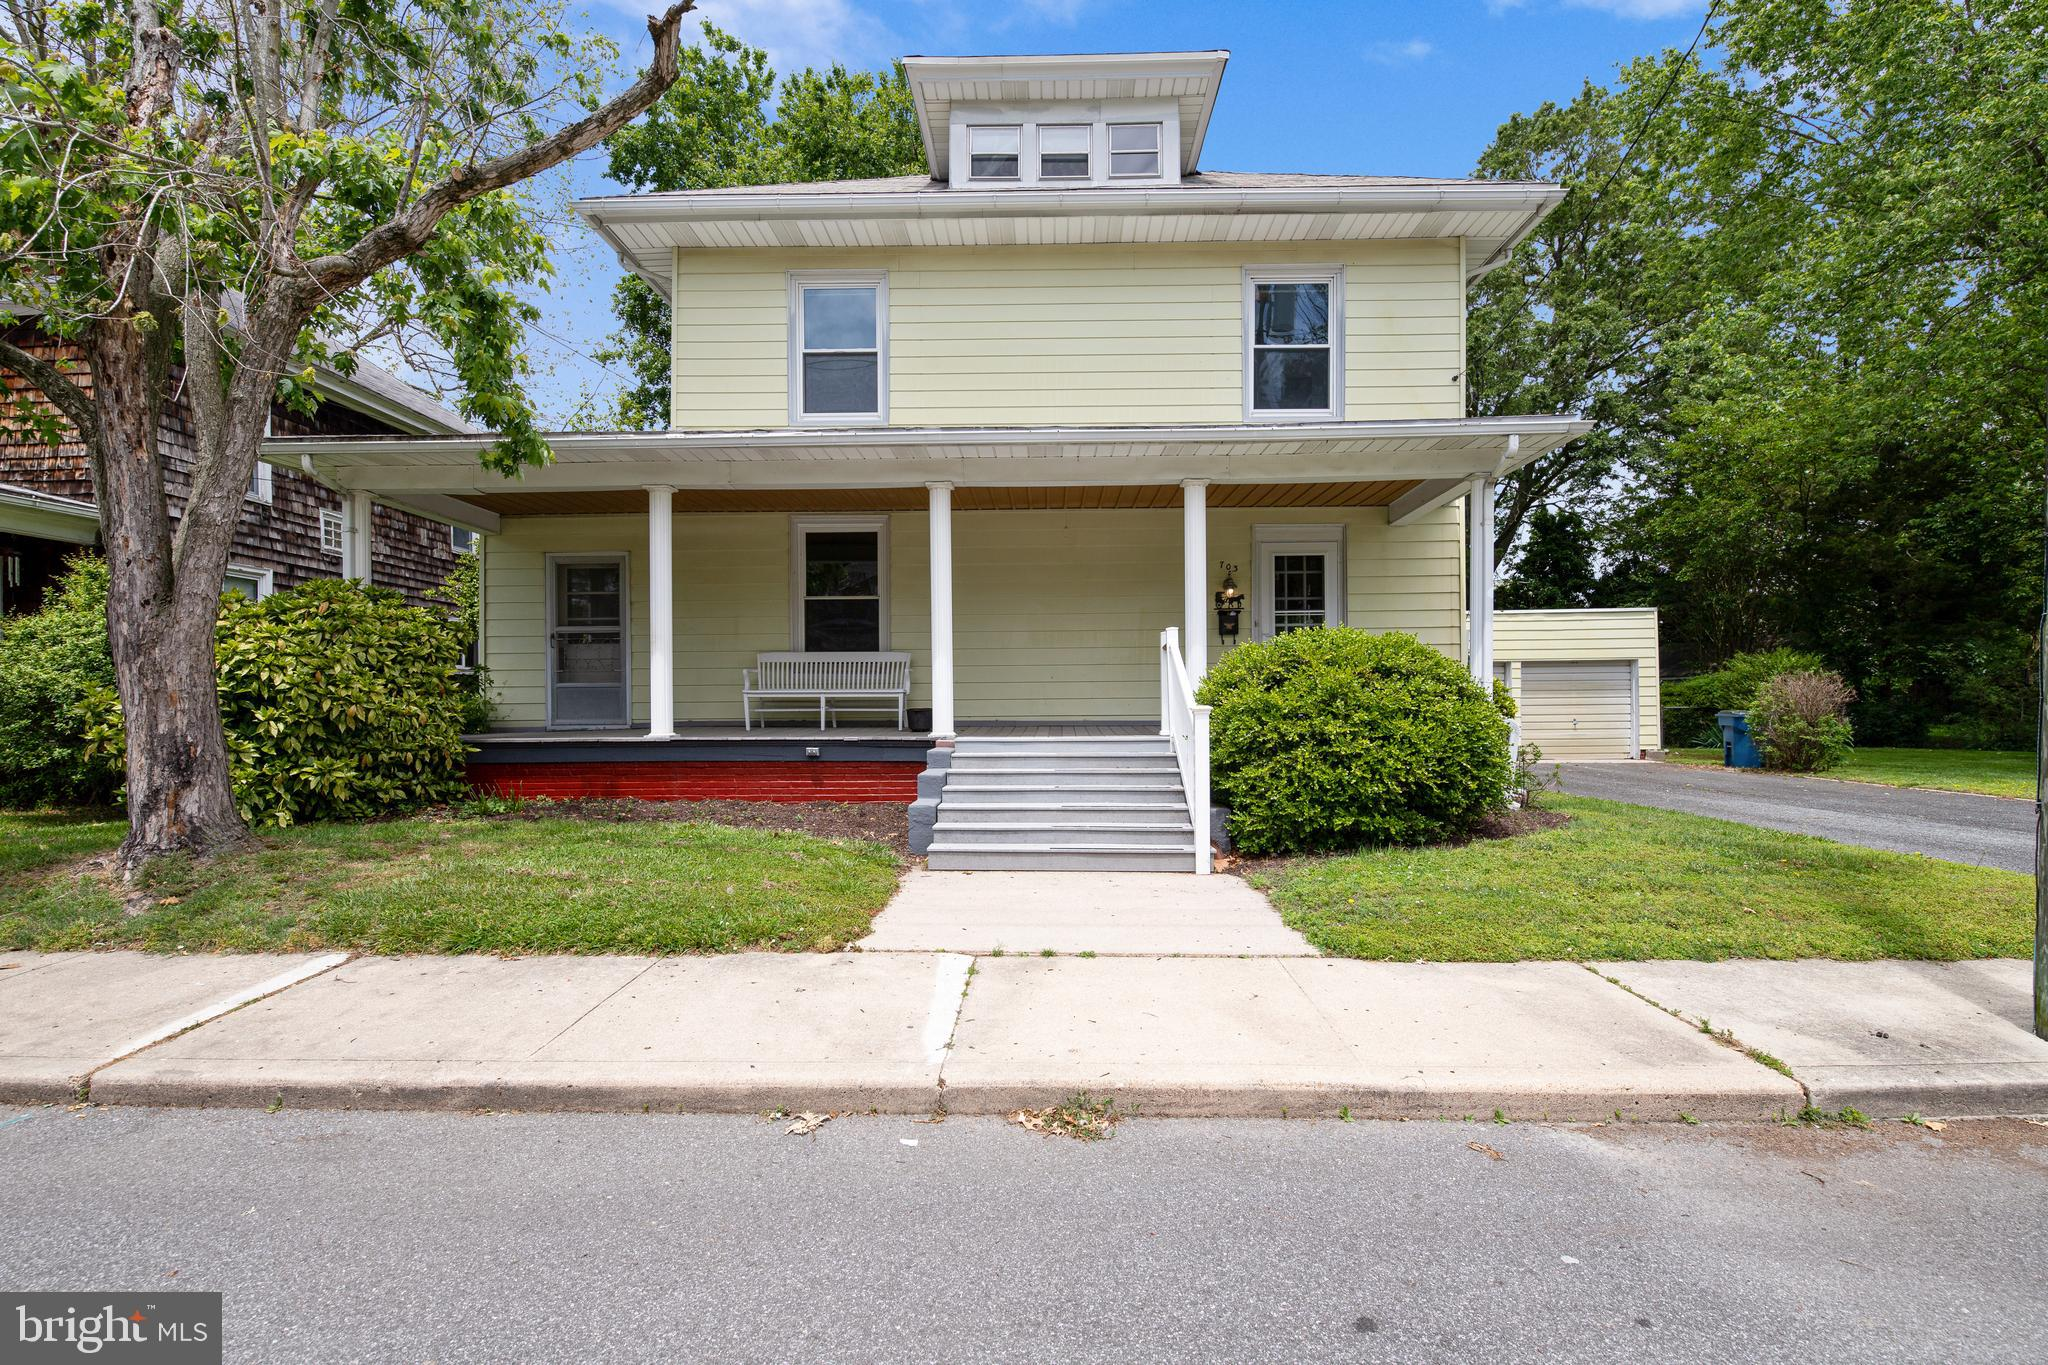 This classic American Foursquare home sits on a gorgeous double lot just a block away from Delmar Mi